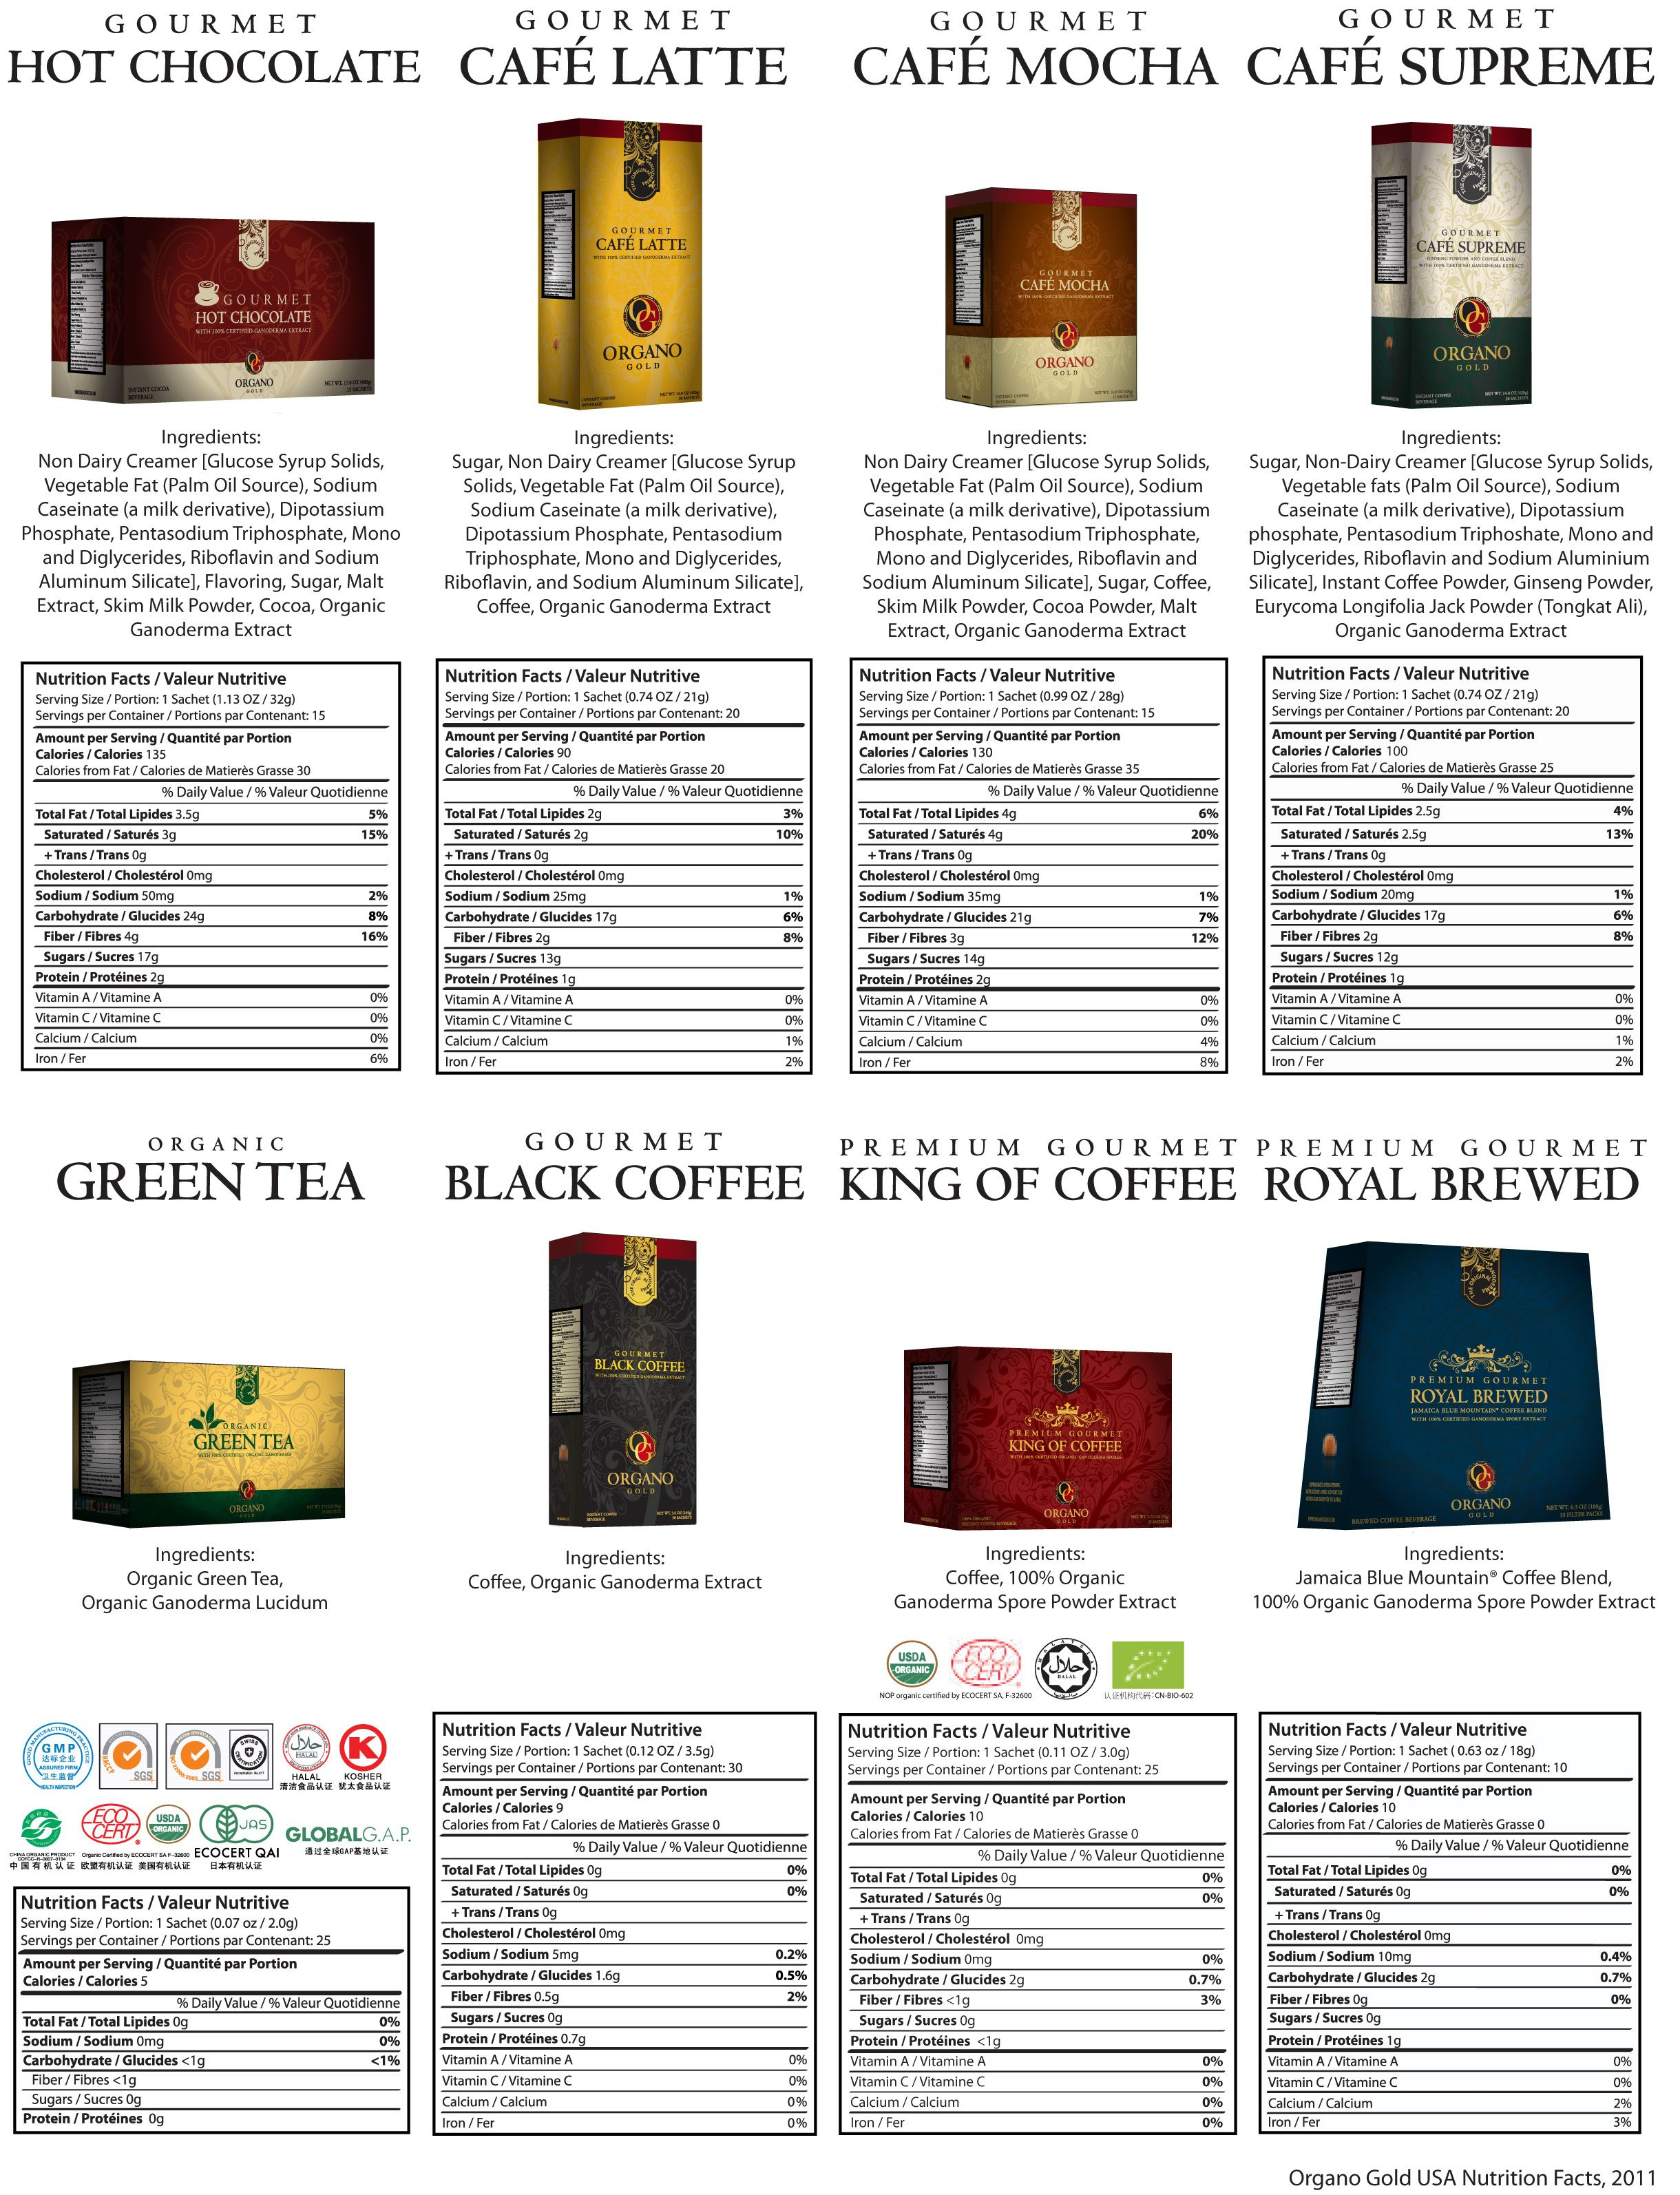 Coffee Nutritional facts and Certification | Organo Gold